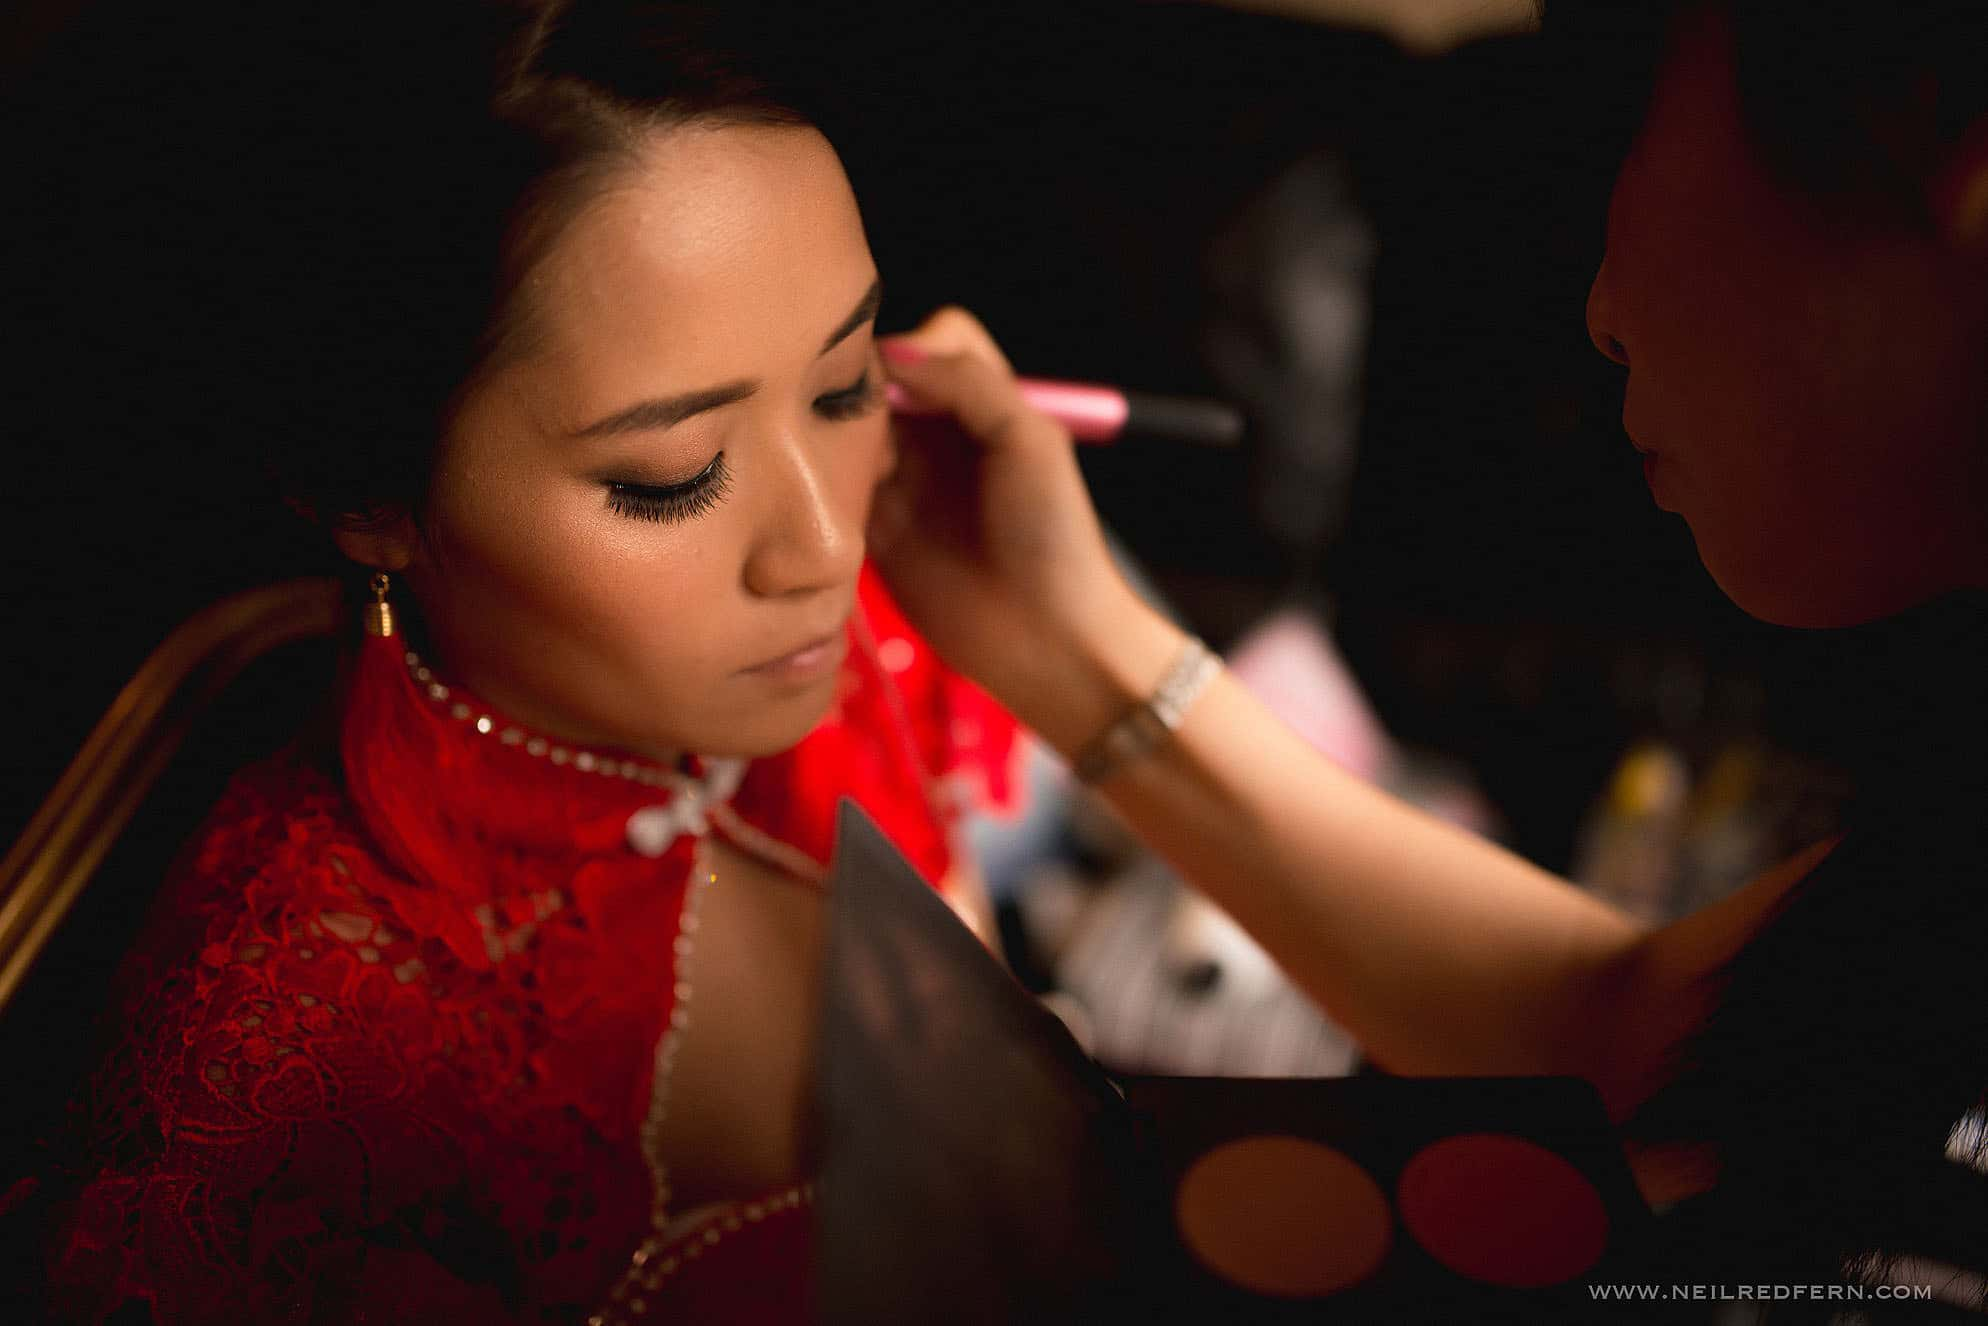 Chinese bride having make up put on